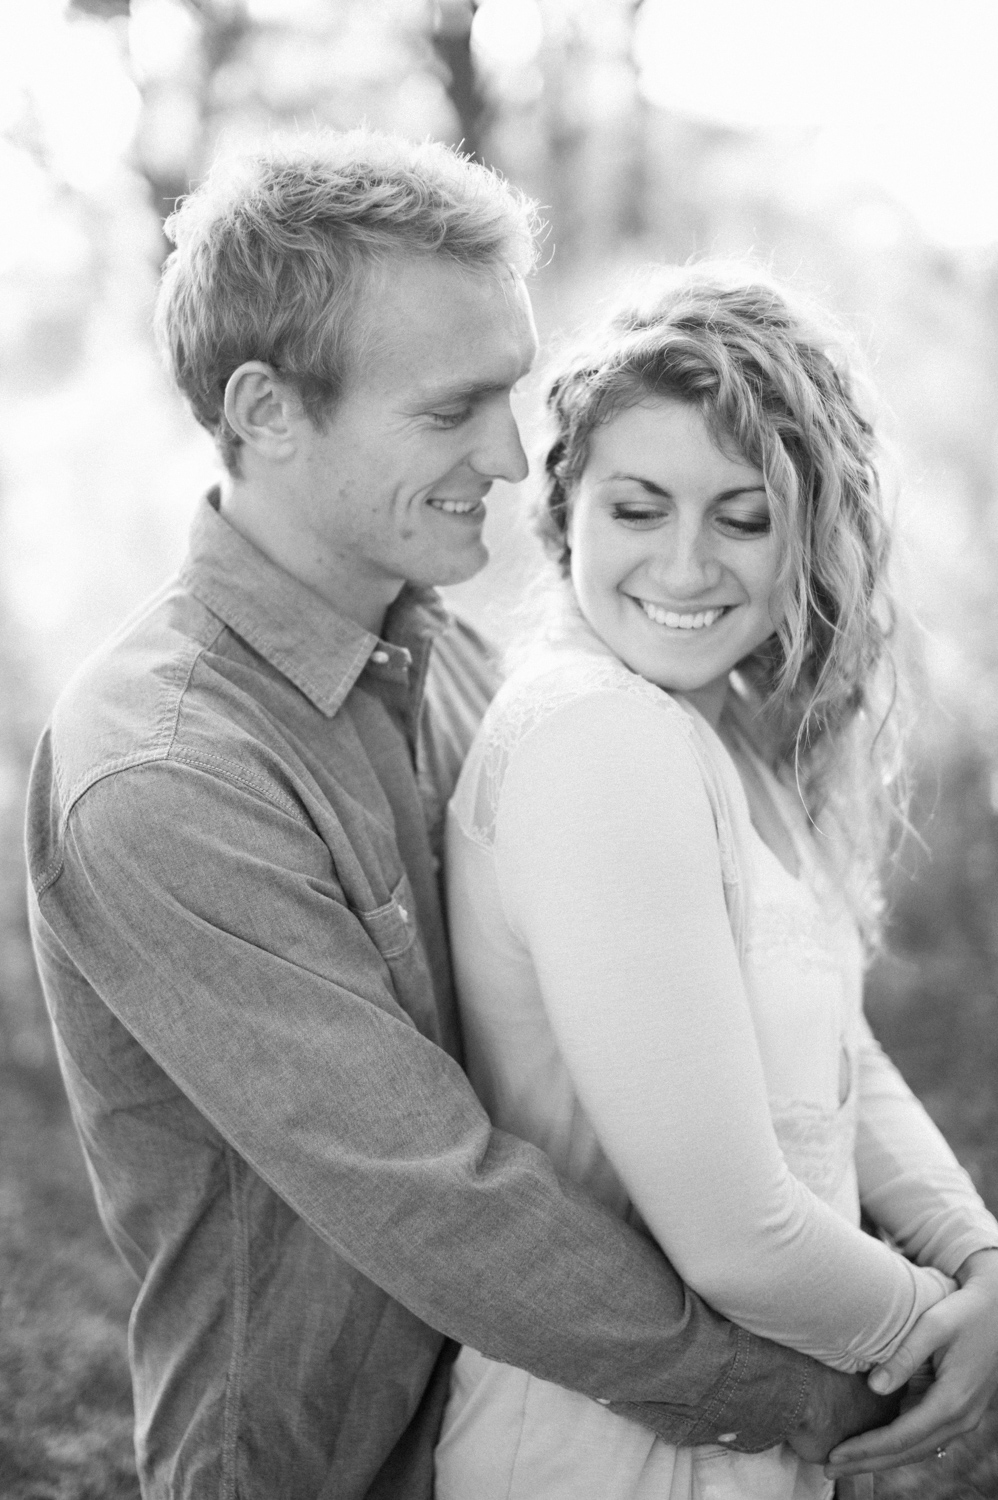 cowles-engagement-session-013.jpg